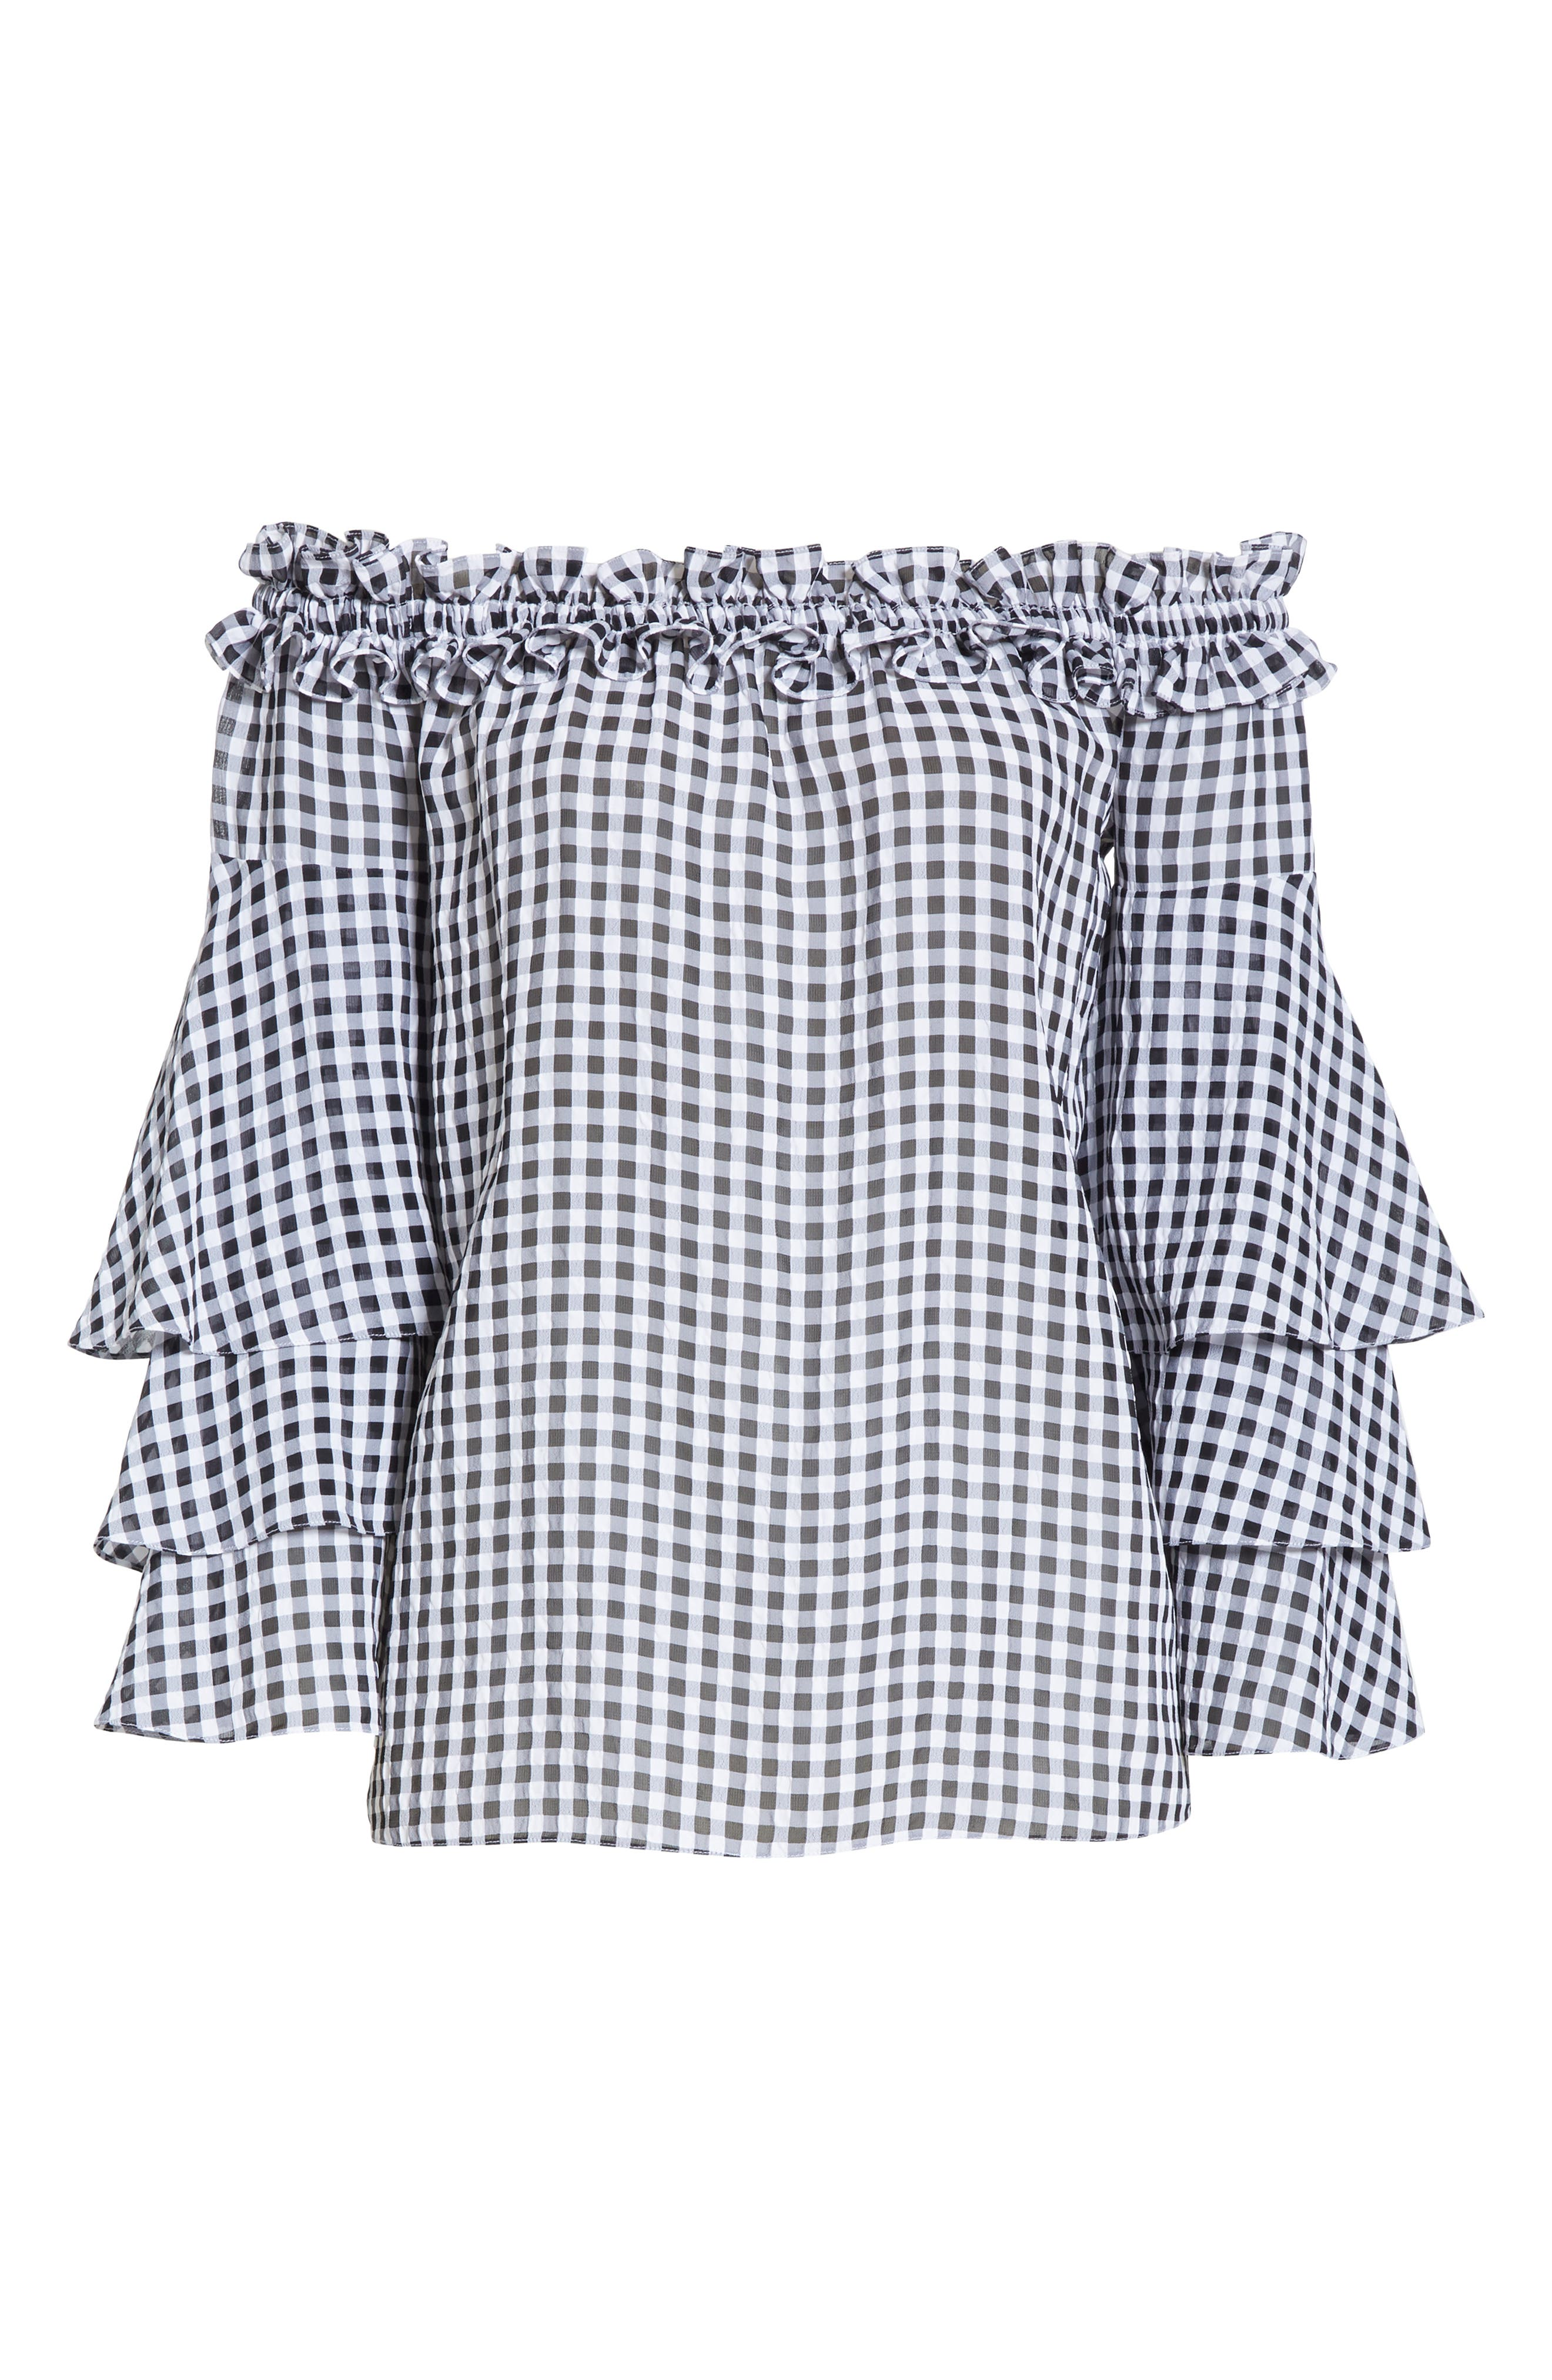 Gingham Tiered Sleeve Off the Shoulder Top,                             Alternate thumbnail 6, color,                             BLACK/ OPTIC WHITE